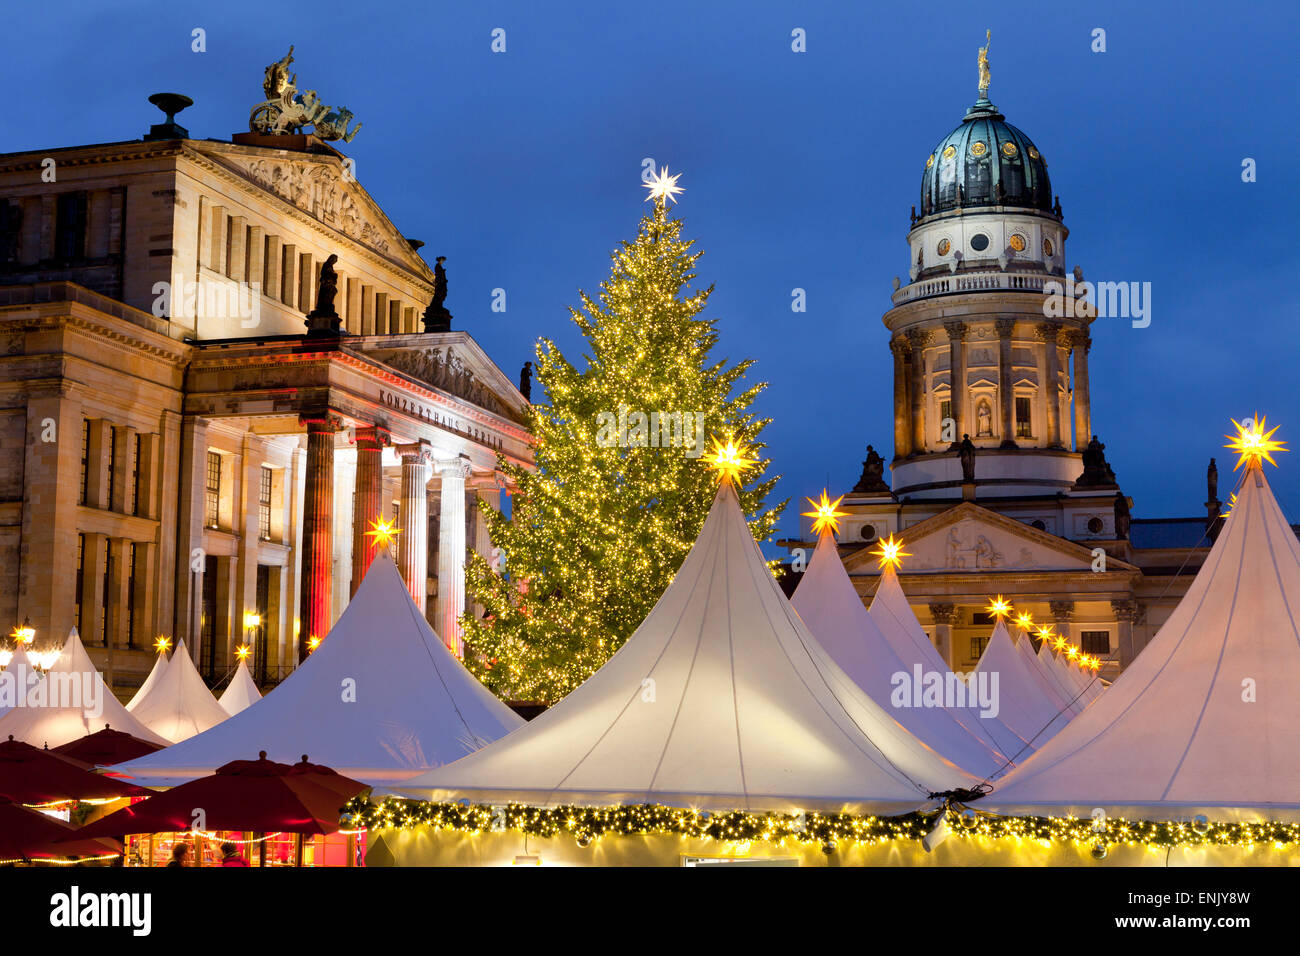 The Gendarmenmarkt Christmas Market, Theatre, and French Cathedral, Berlin, Germany, Europe - Stock Image